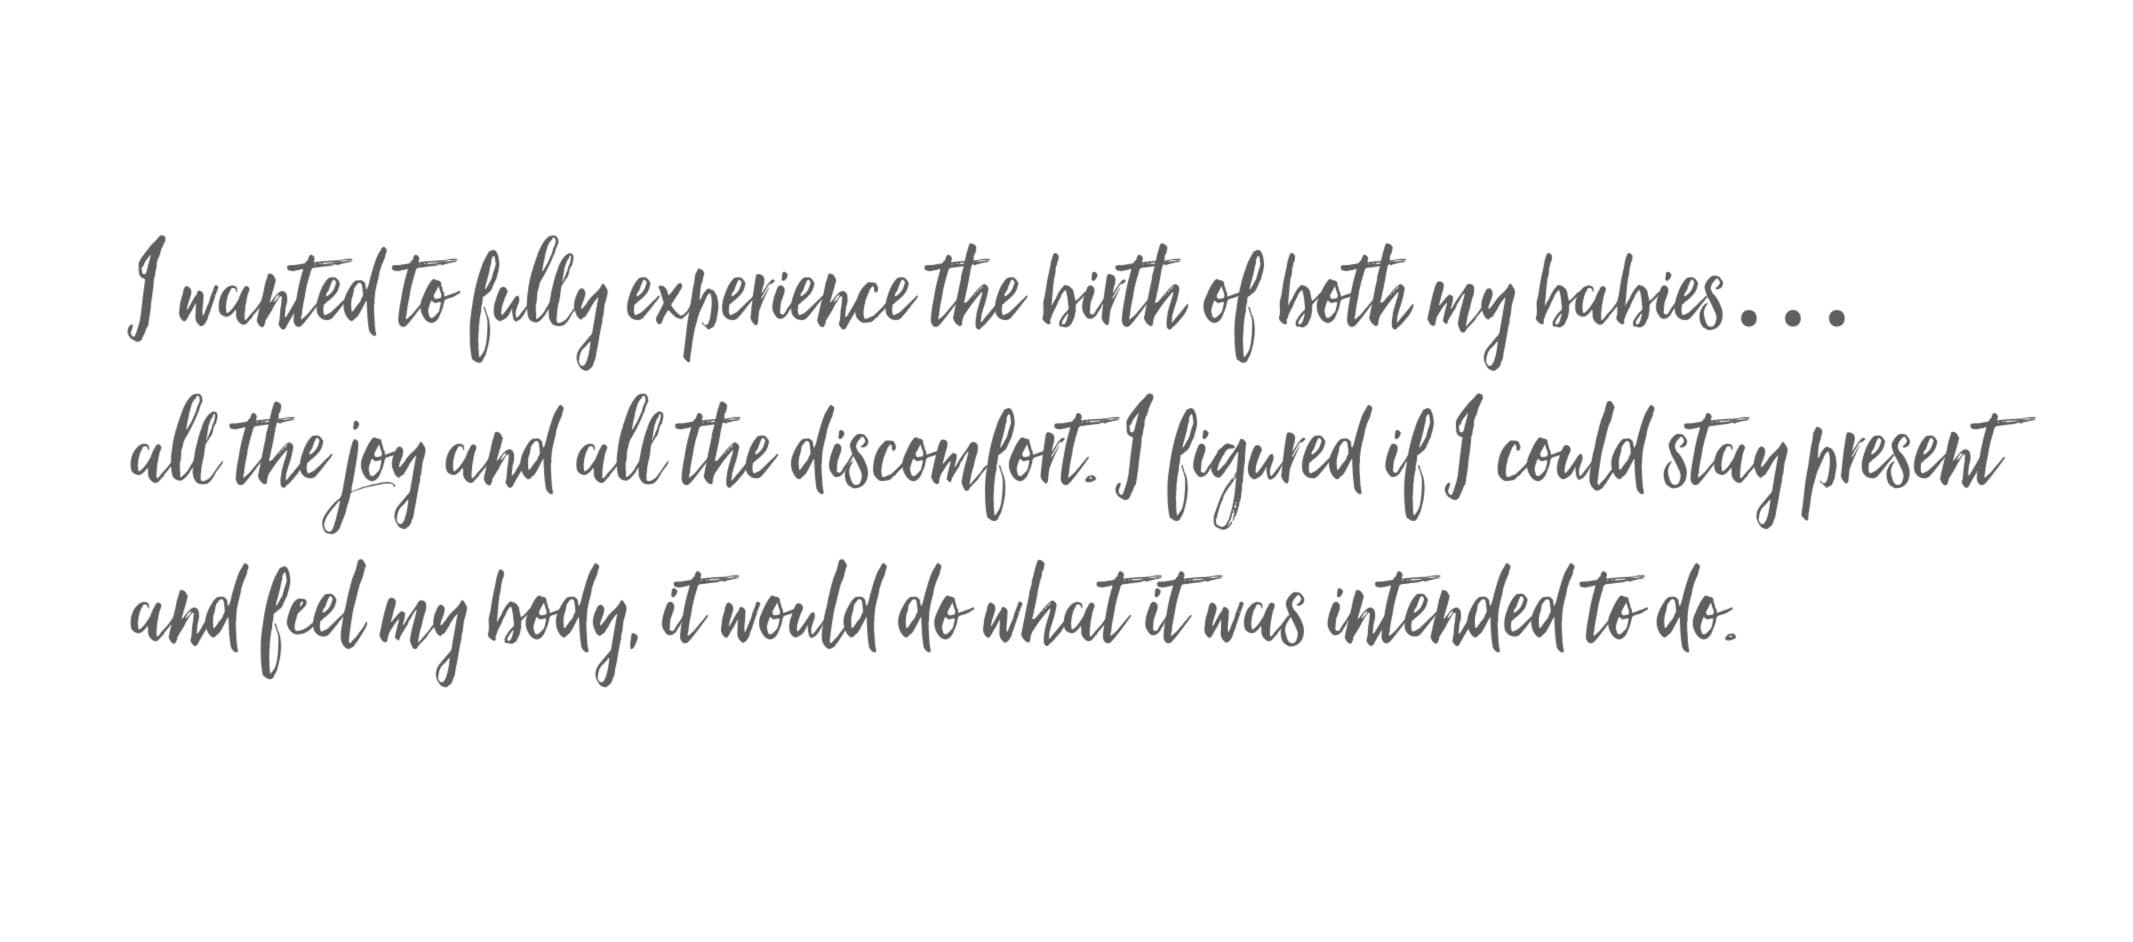 I wanted to fully experience the birth of both my babies... all the joy and all the discomfort. I figured if I could stay present and feel my body, it would do what it was intended to do.